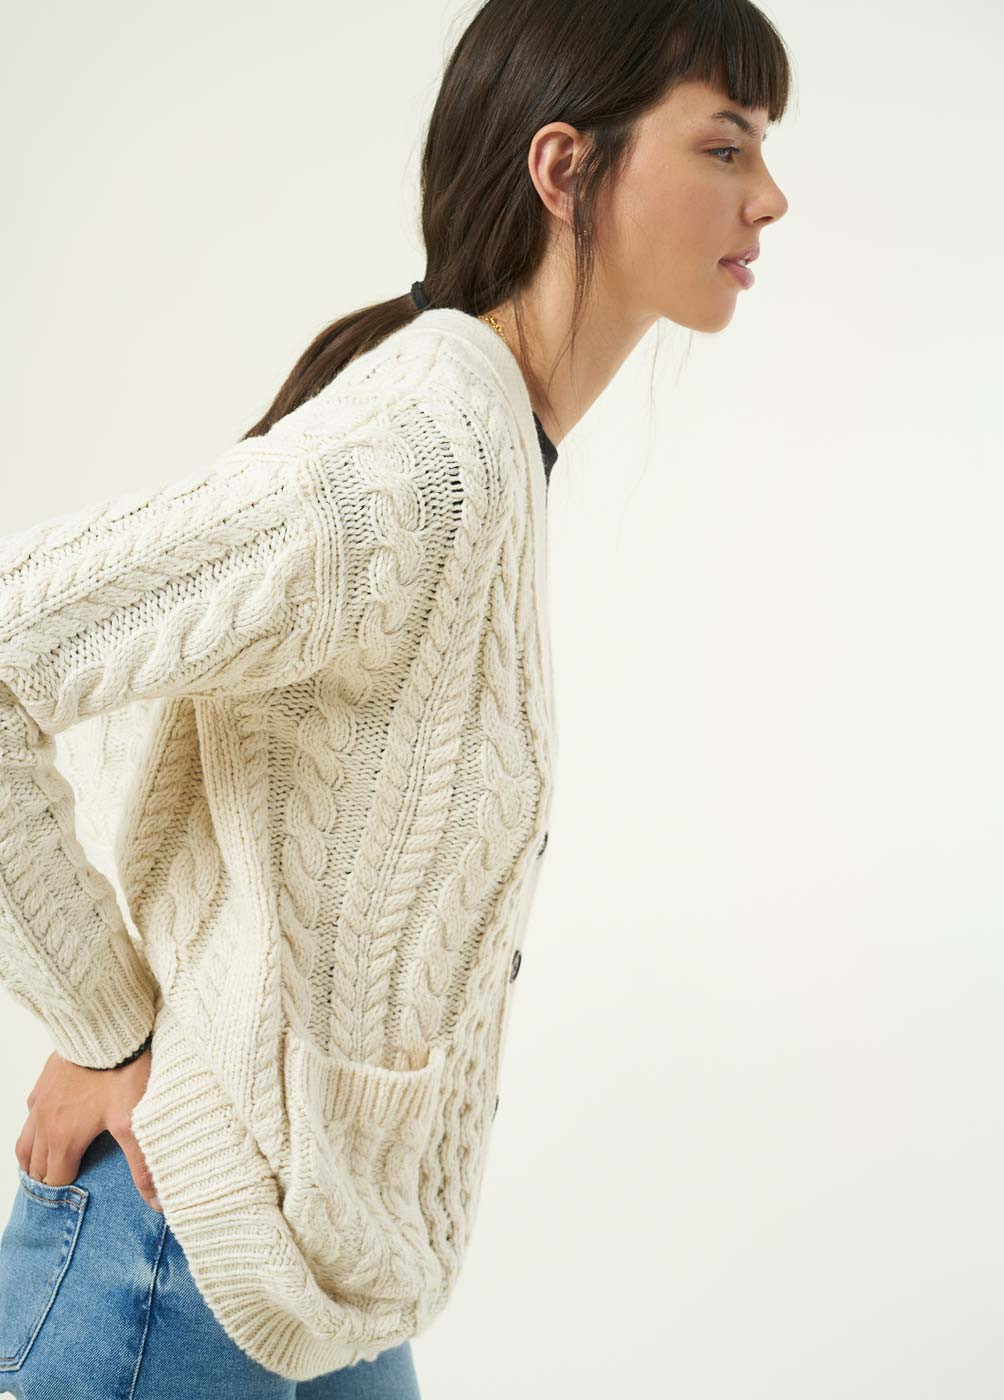 CARDI CABLE-KNIT CARDIGAN WITH POCKETS